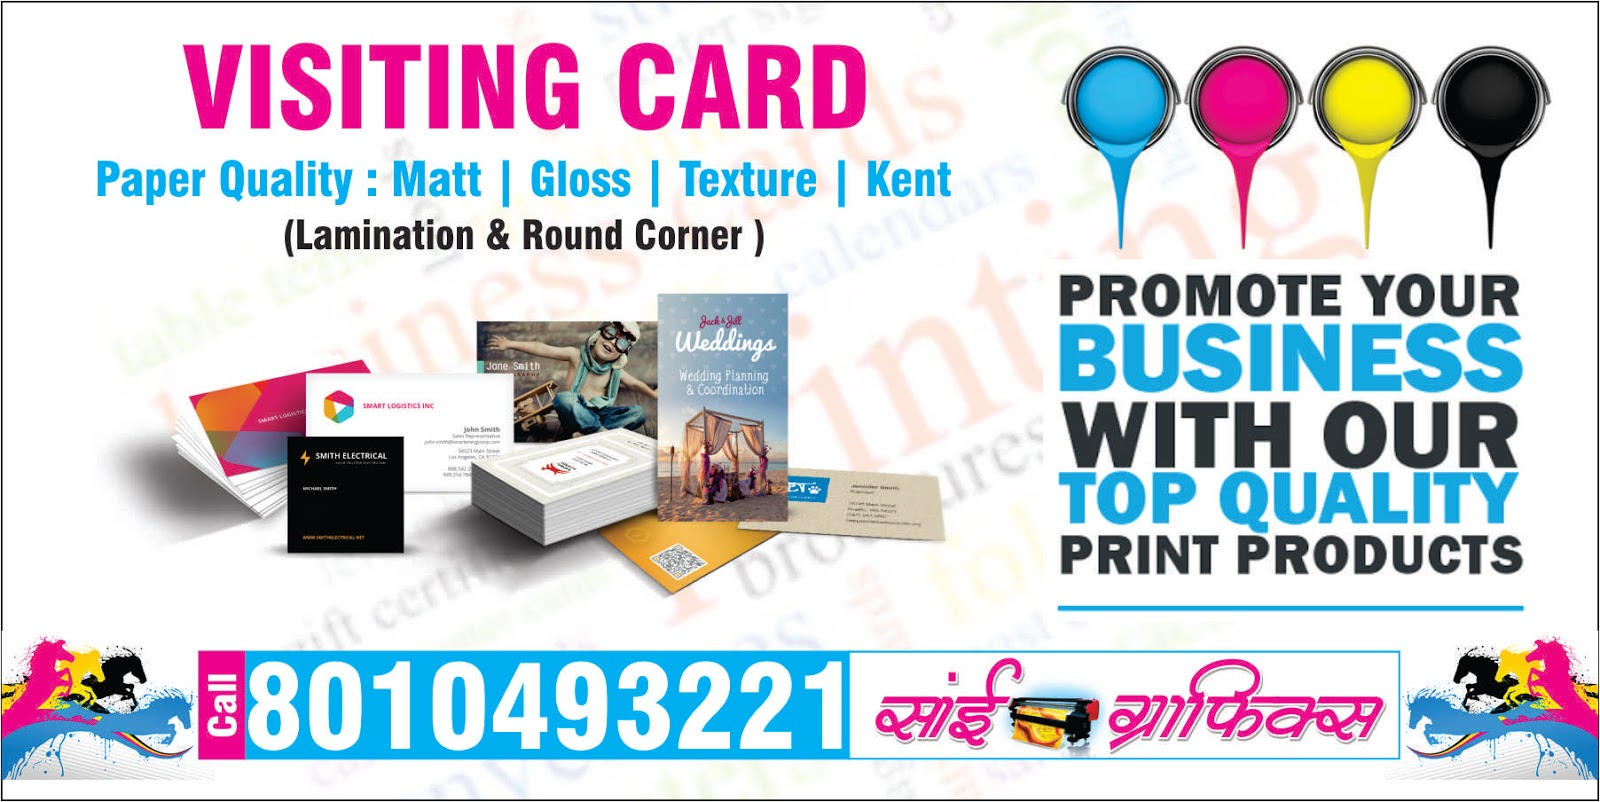 Sai graphics noida visiting card printing in noida visiting cards are available with high quality paper printing quality colourmoves